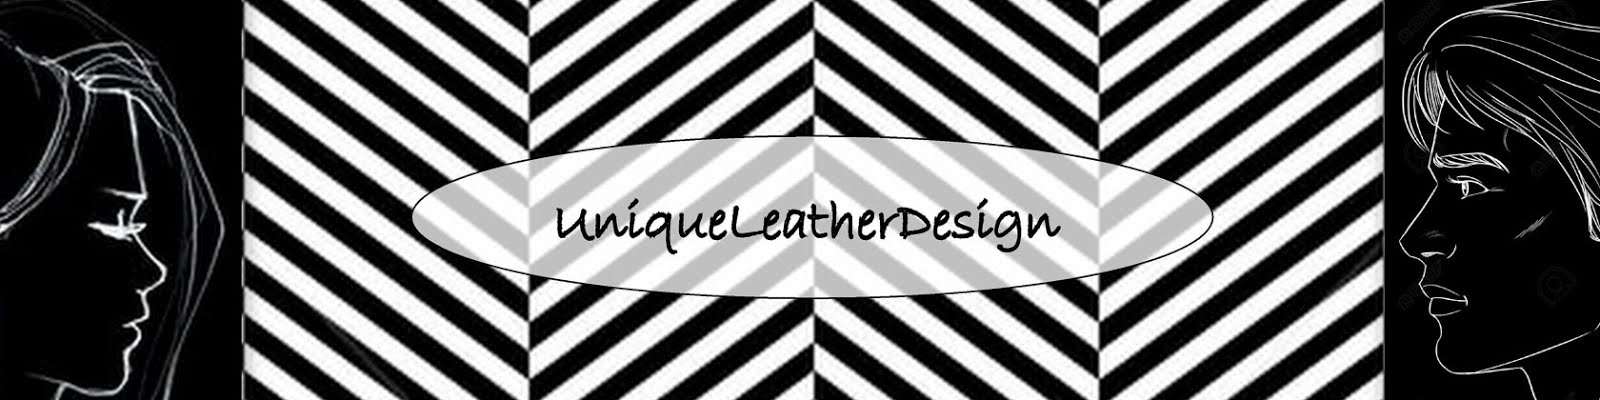 UniqueLeatherDesign